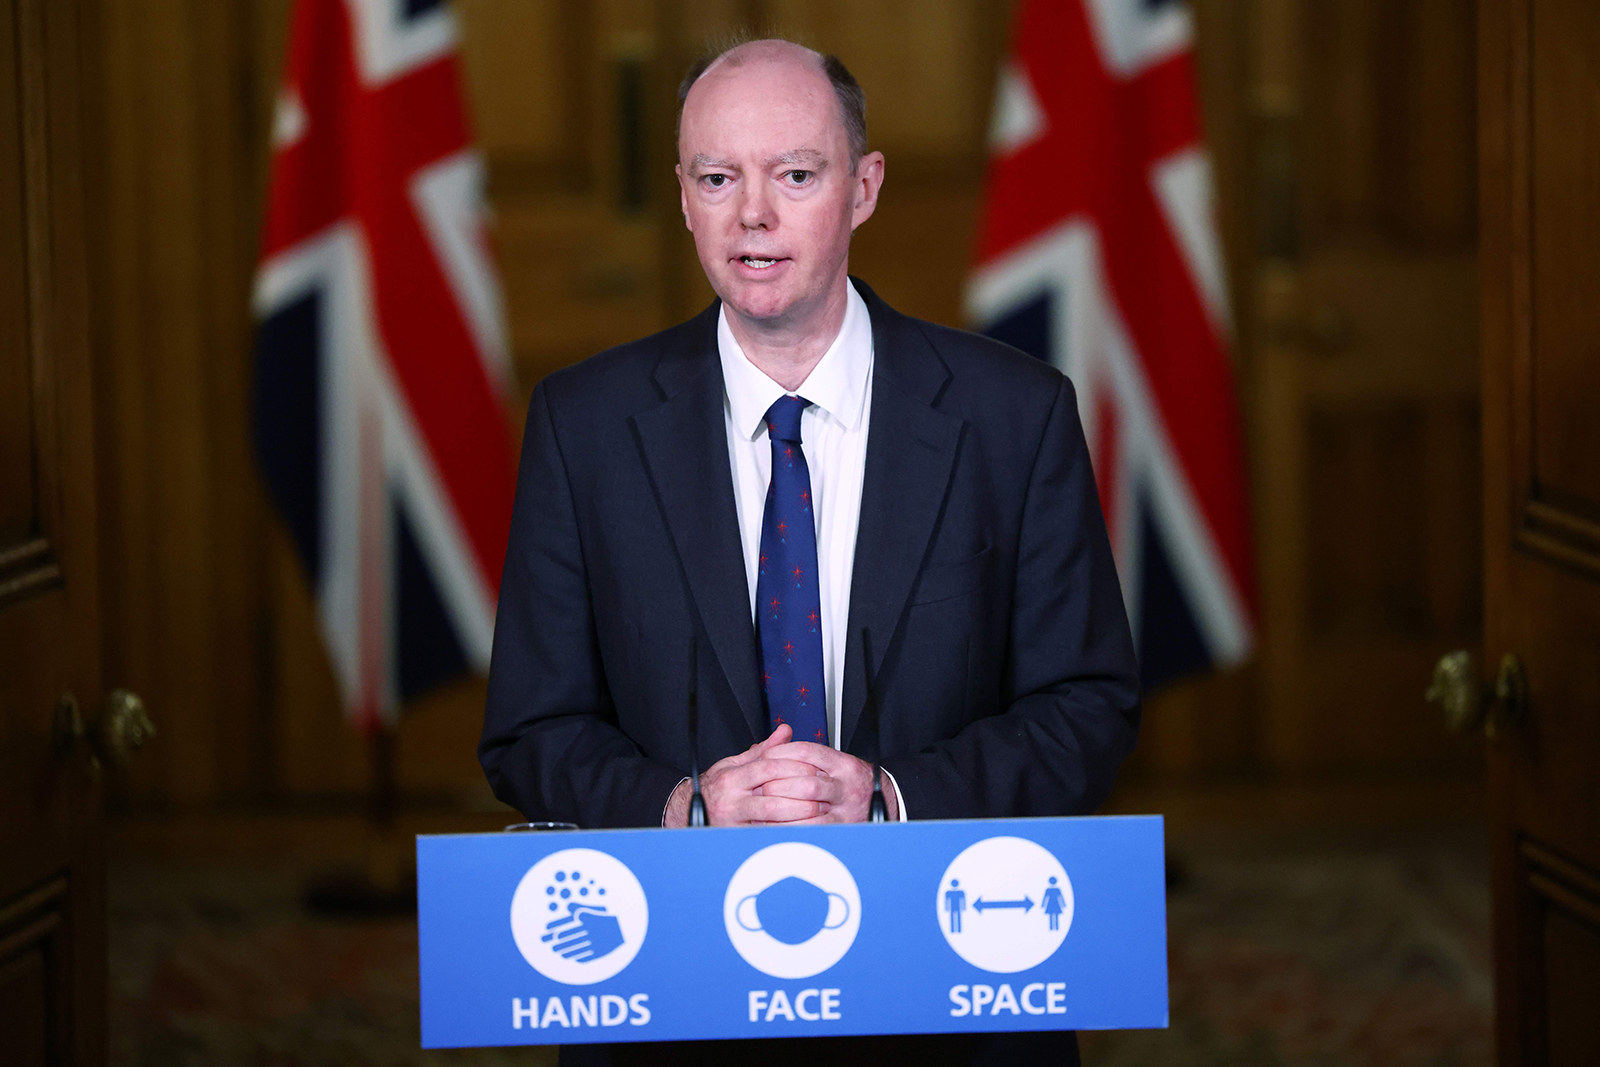 Britain's Chief Medical Officer for England Chris Whitty speaks during a virtual press conference inside 10 Downing Street in central London, on November 23.